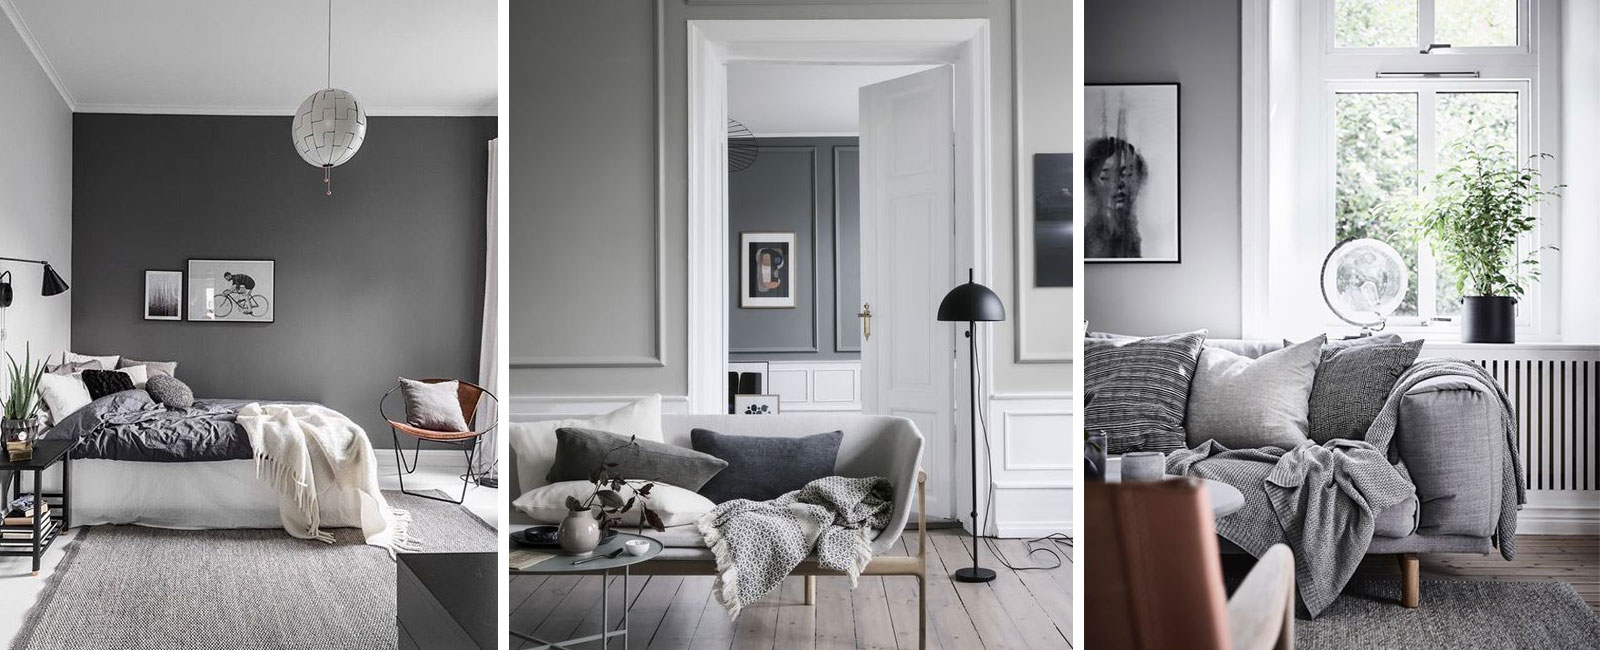 Why grey is the perfect color for interiors